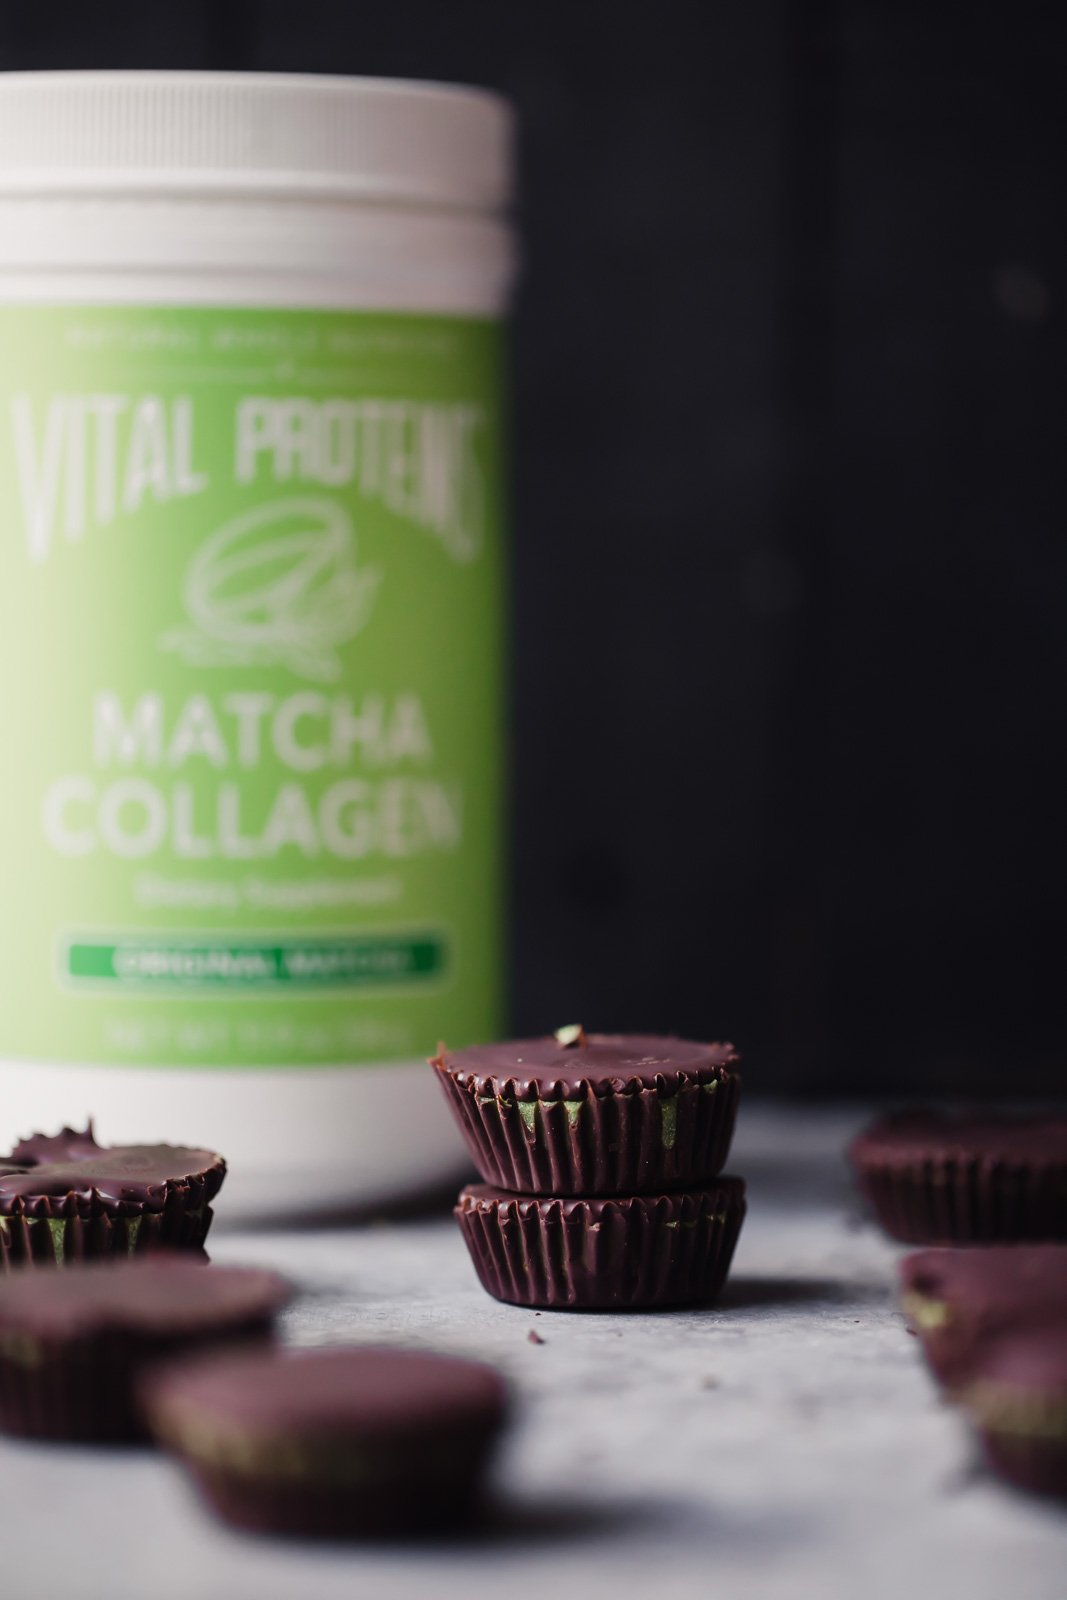 Easy, decadent matcha dark chocolate coconut butter cups made with Vital Proteins Collagen Matcha. The perfect little bites to keep in your fridge when you need a sweet treat!